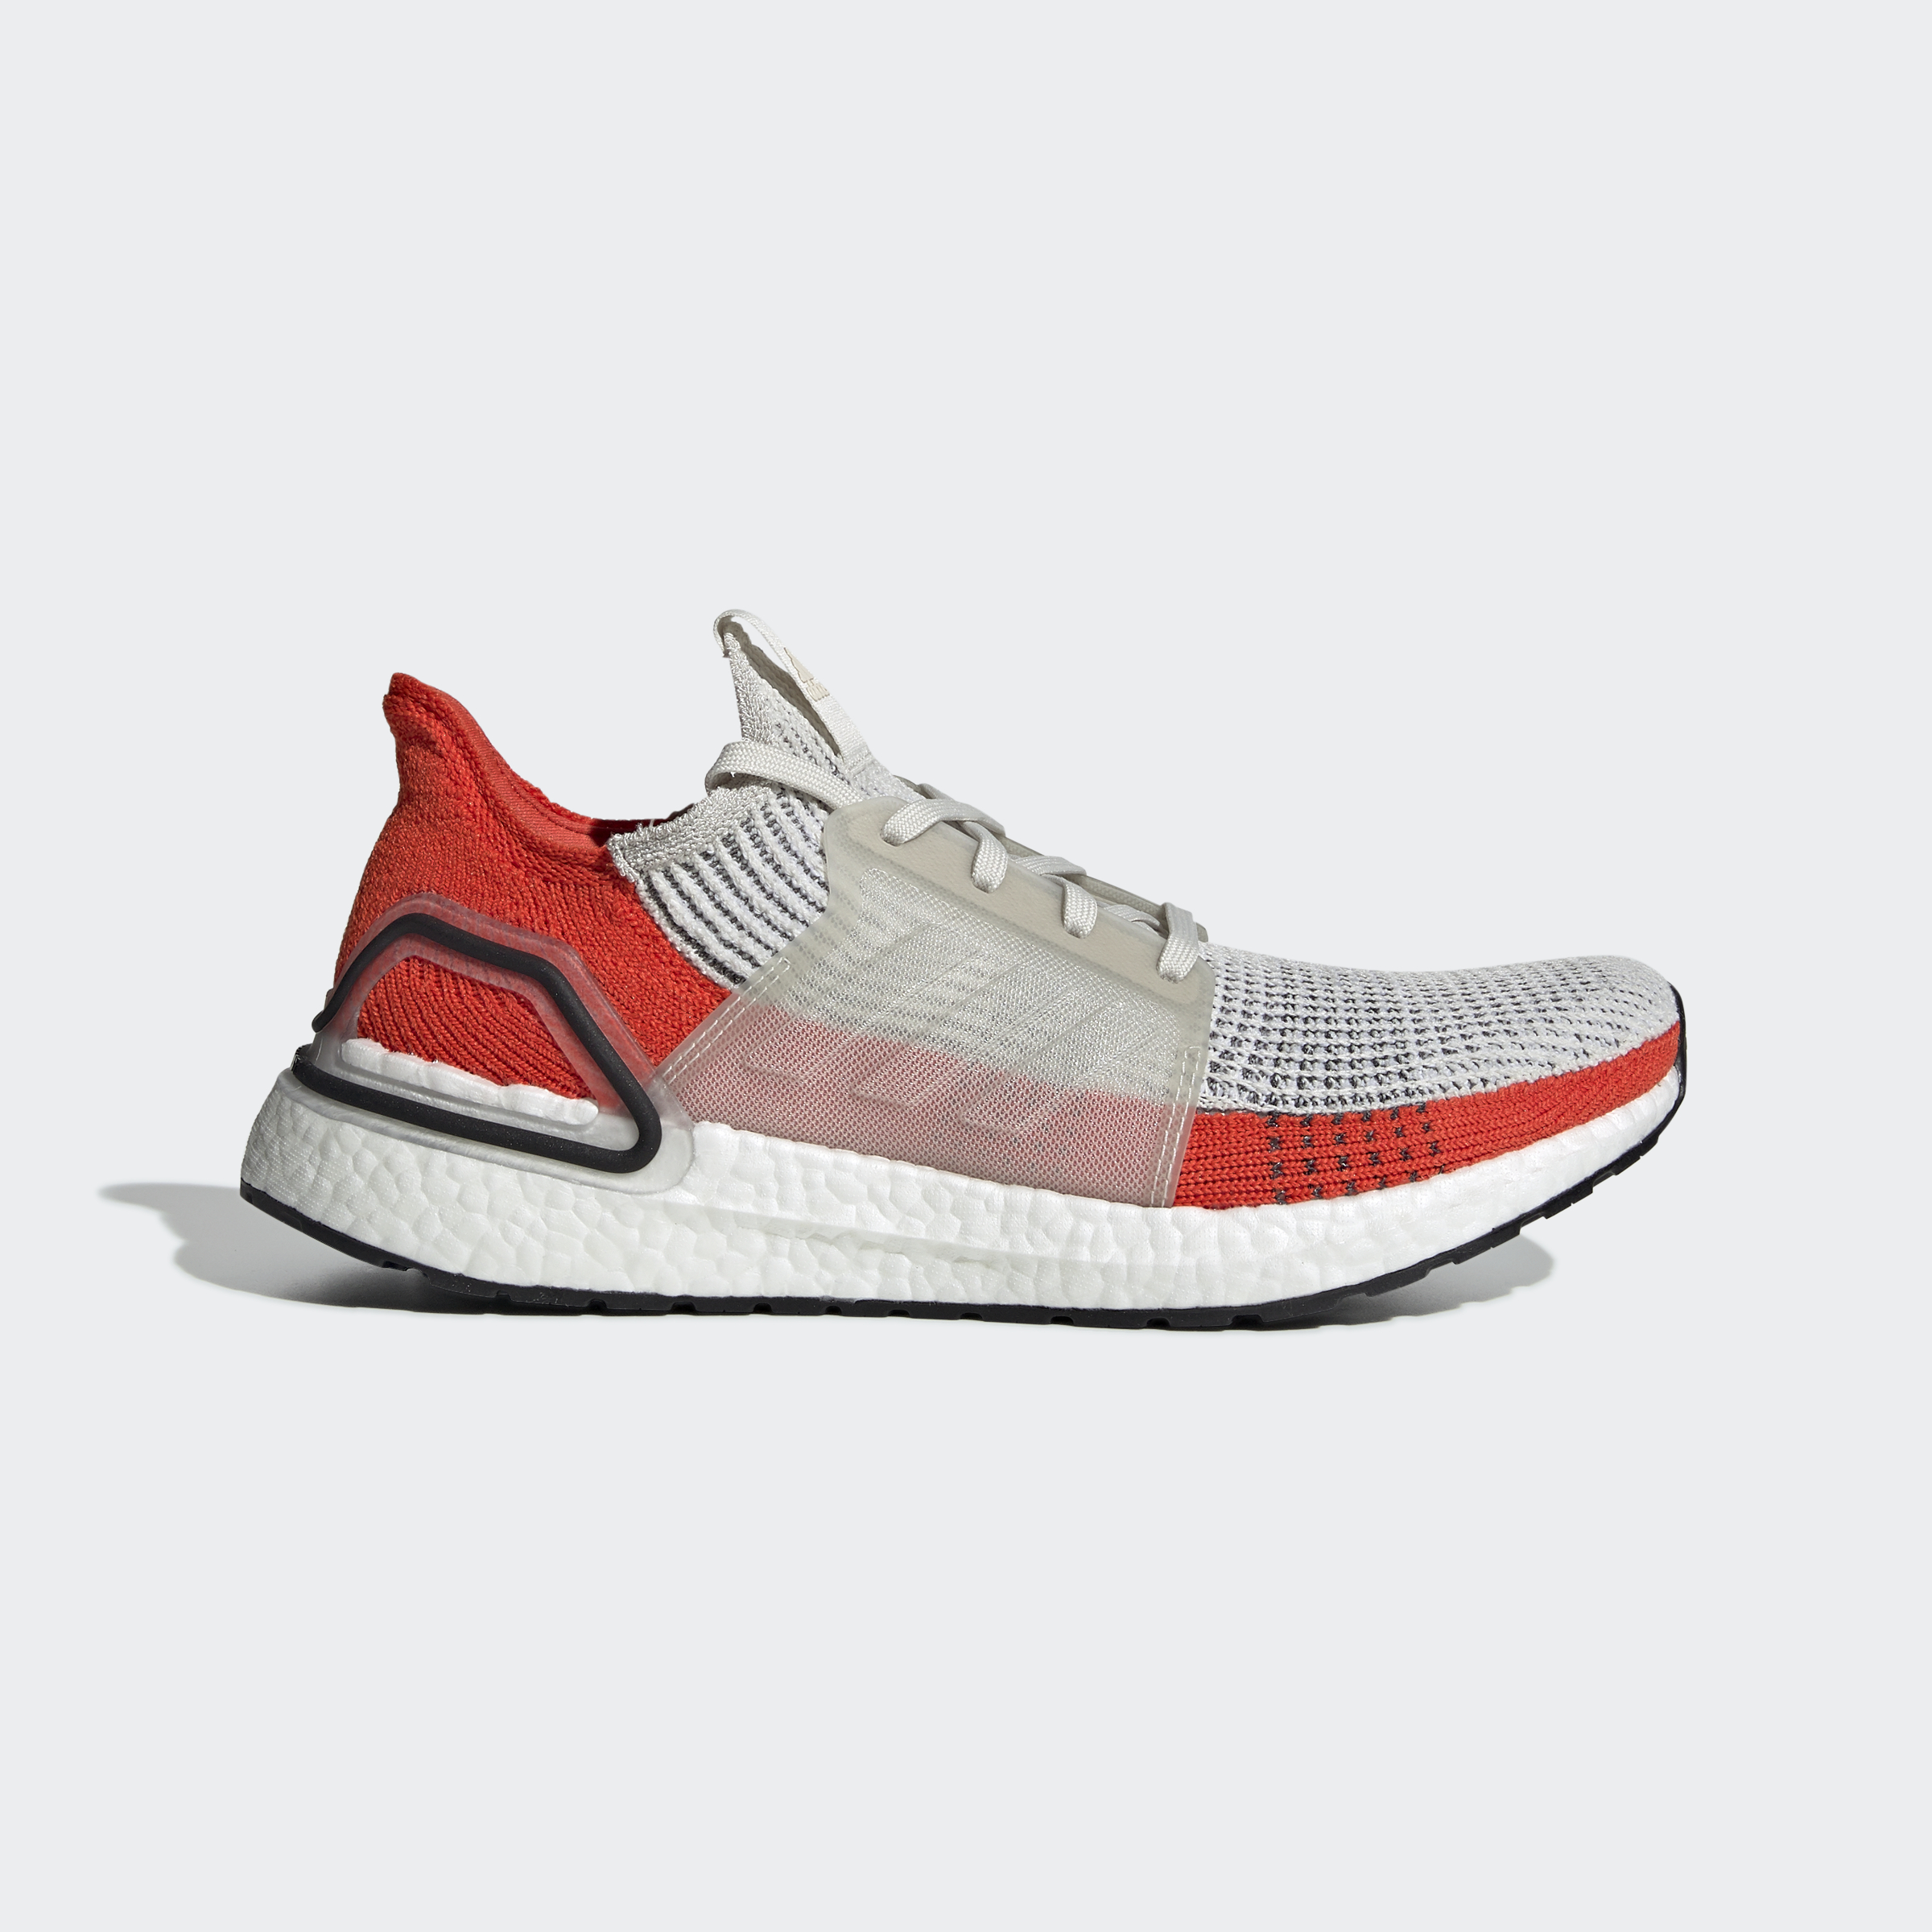 adidas-Ultraboost-19-Shoes-Athletic-amp-Sneakers thumbnail 49